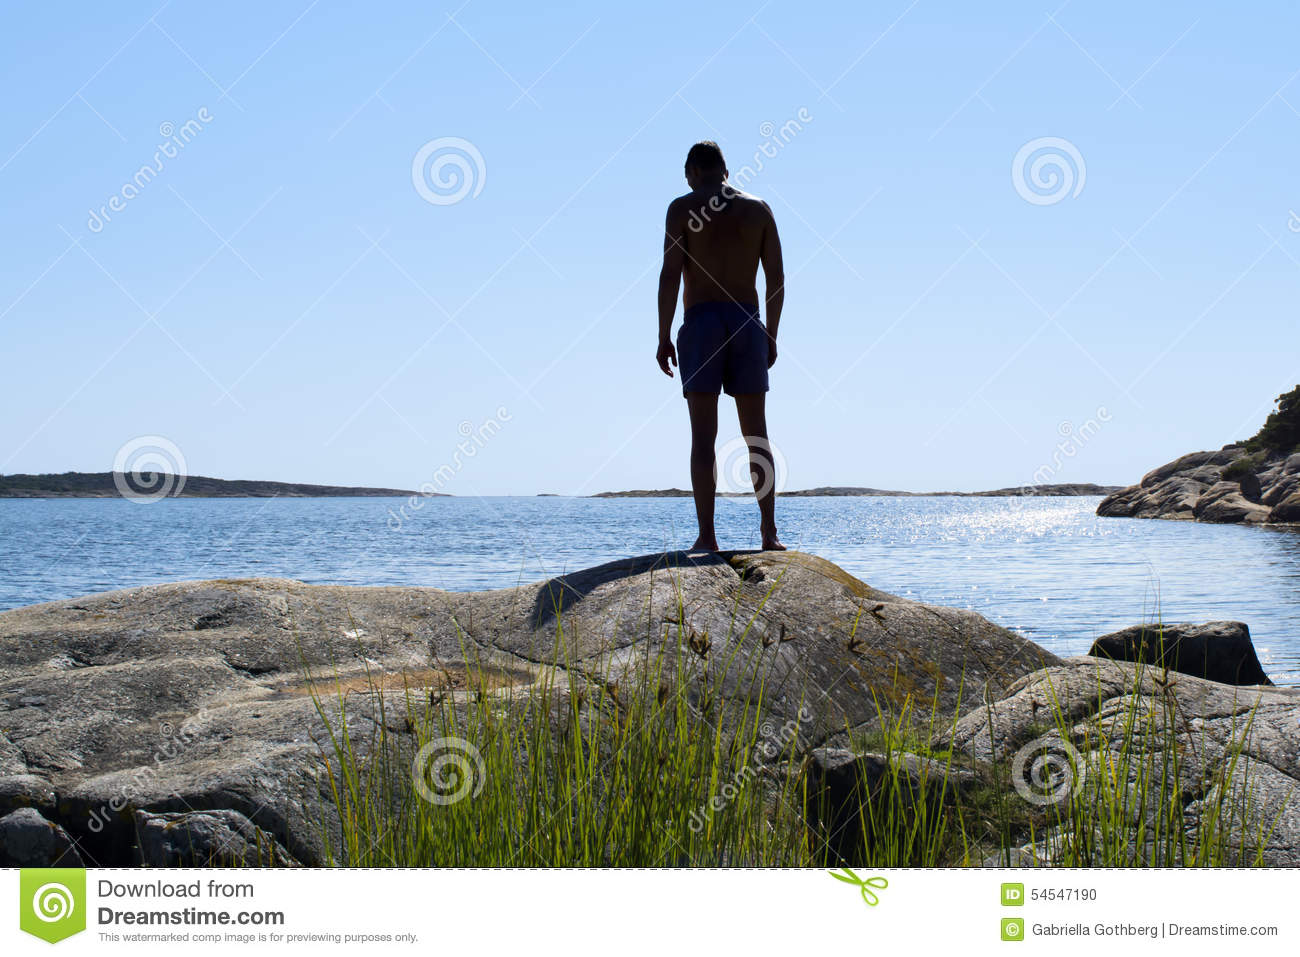 Silhouette of man about to dive into the ocean